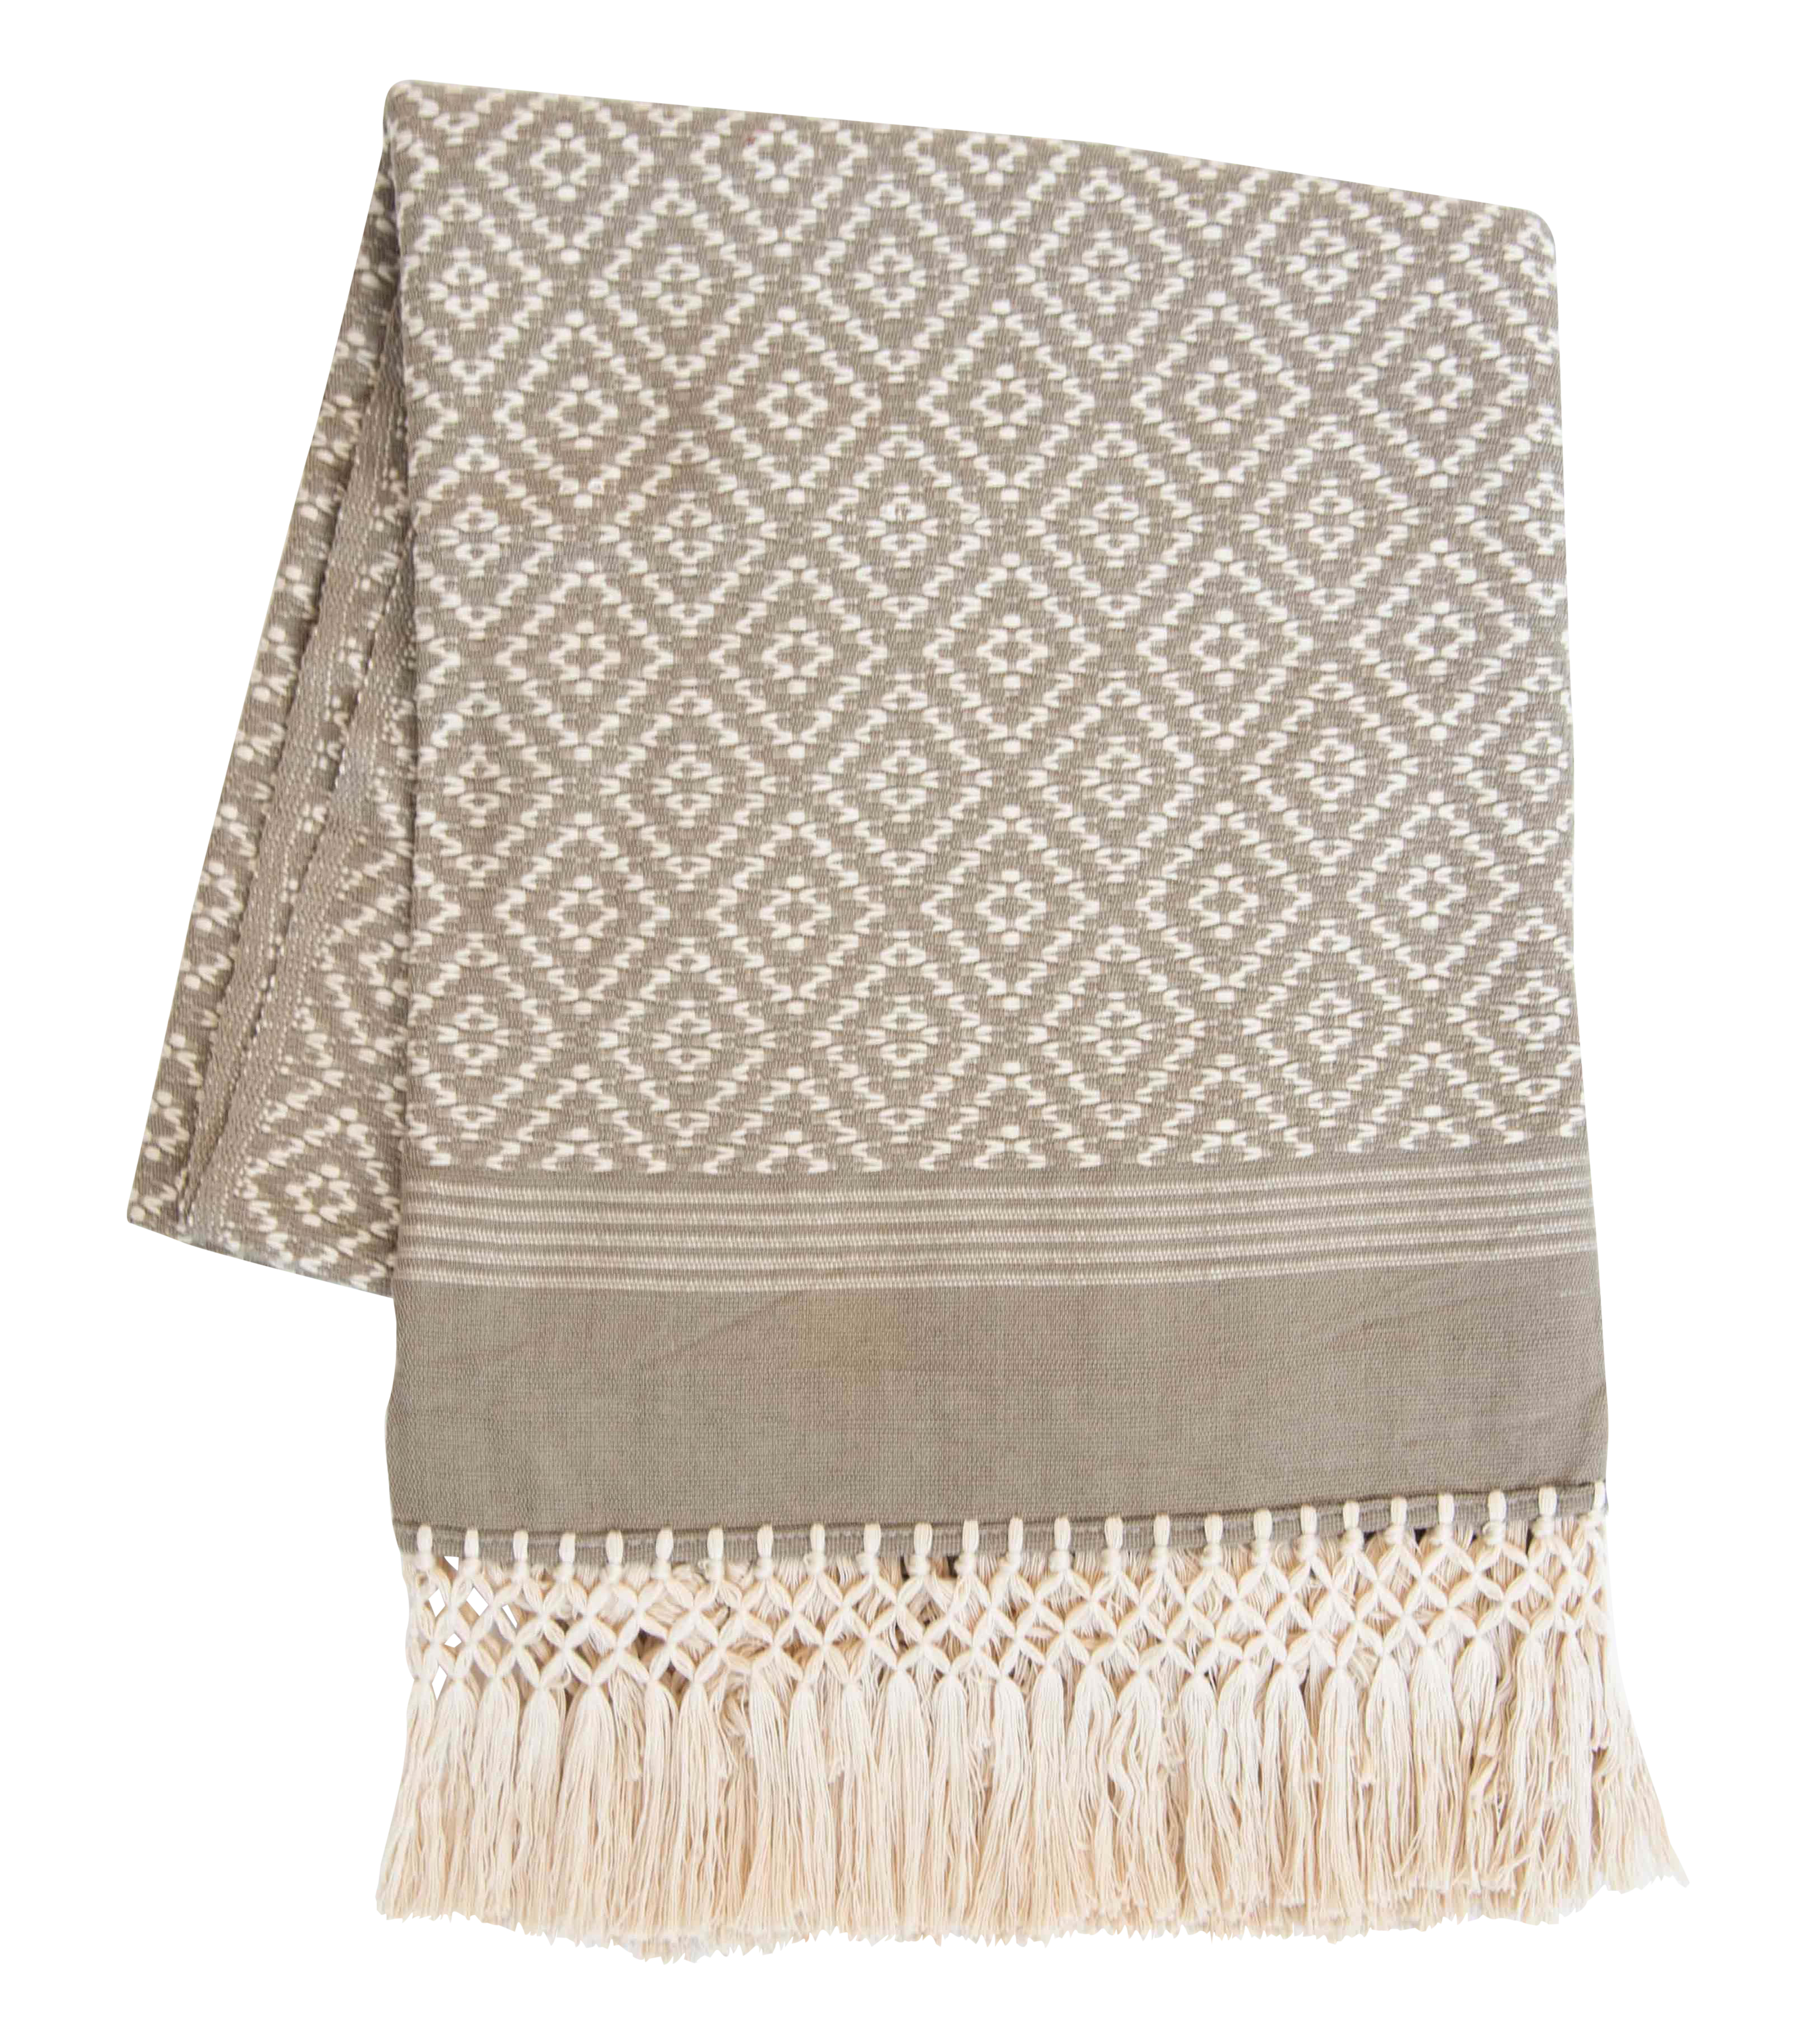 Taupe Amp Cream Handwoven Mexican Throw Chairish